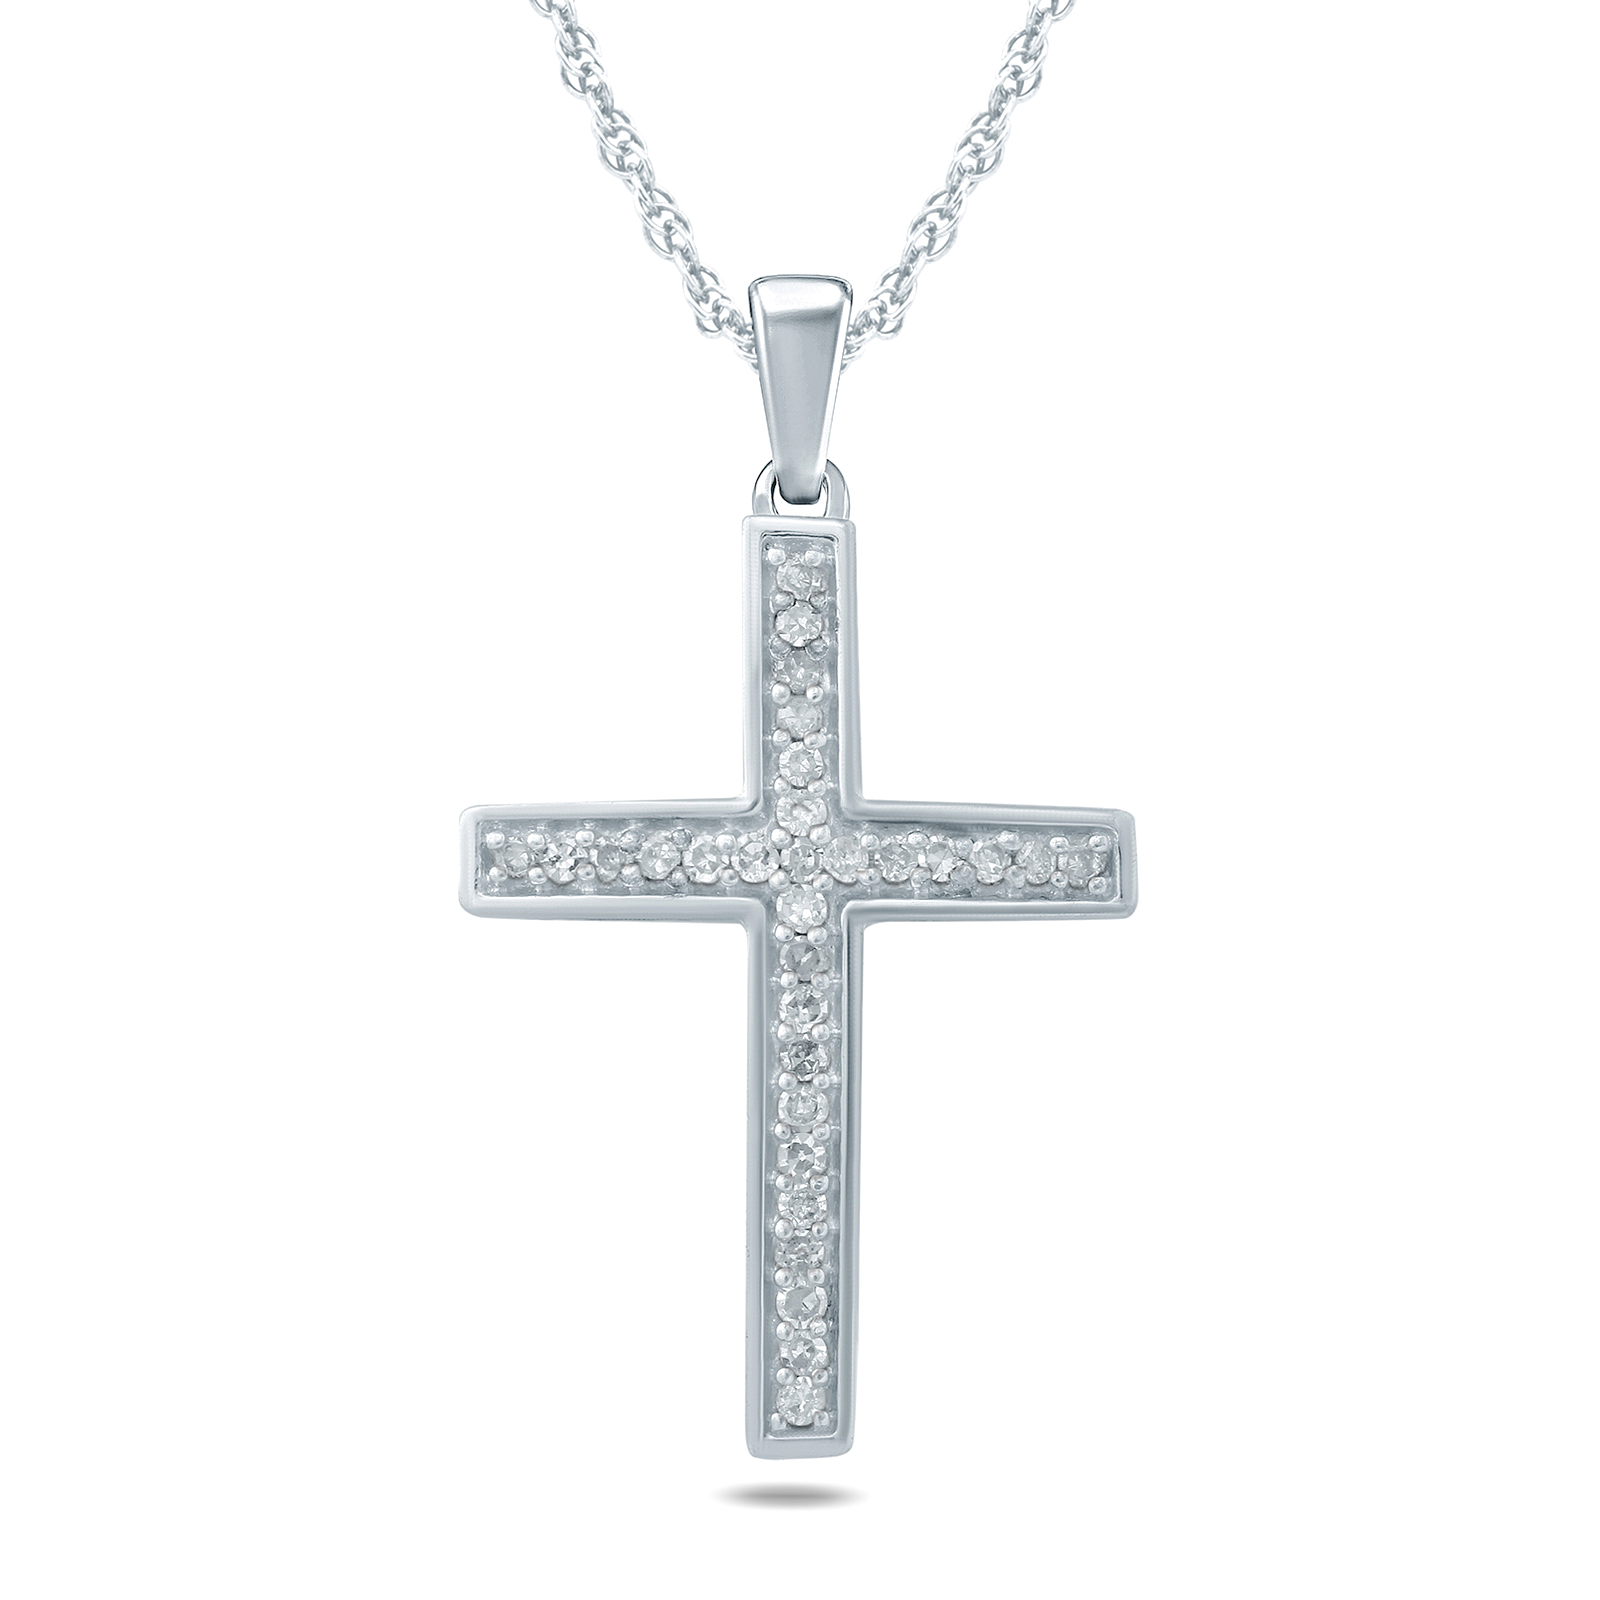 1/10 Carat TW Diamond Cross Pendant in 10K White Gold